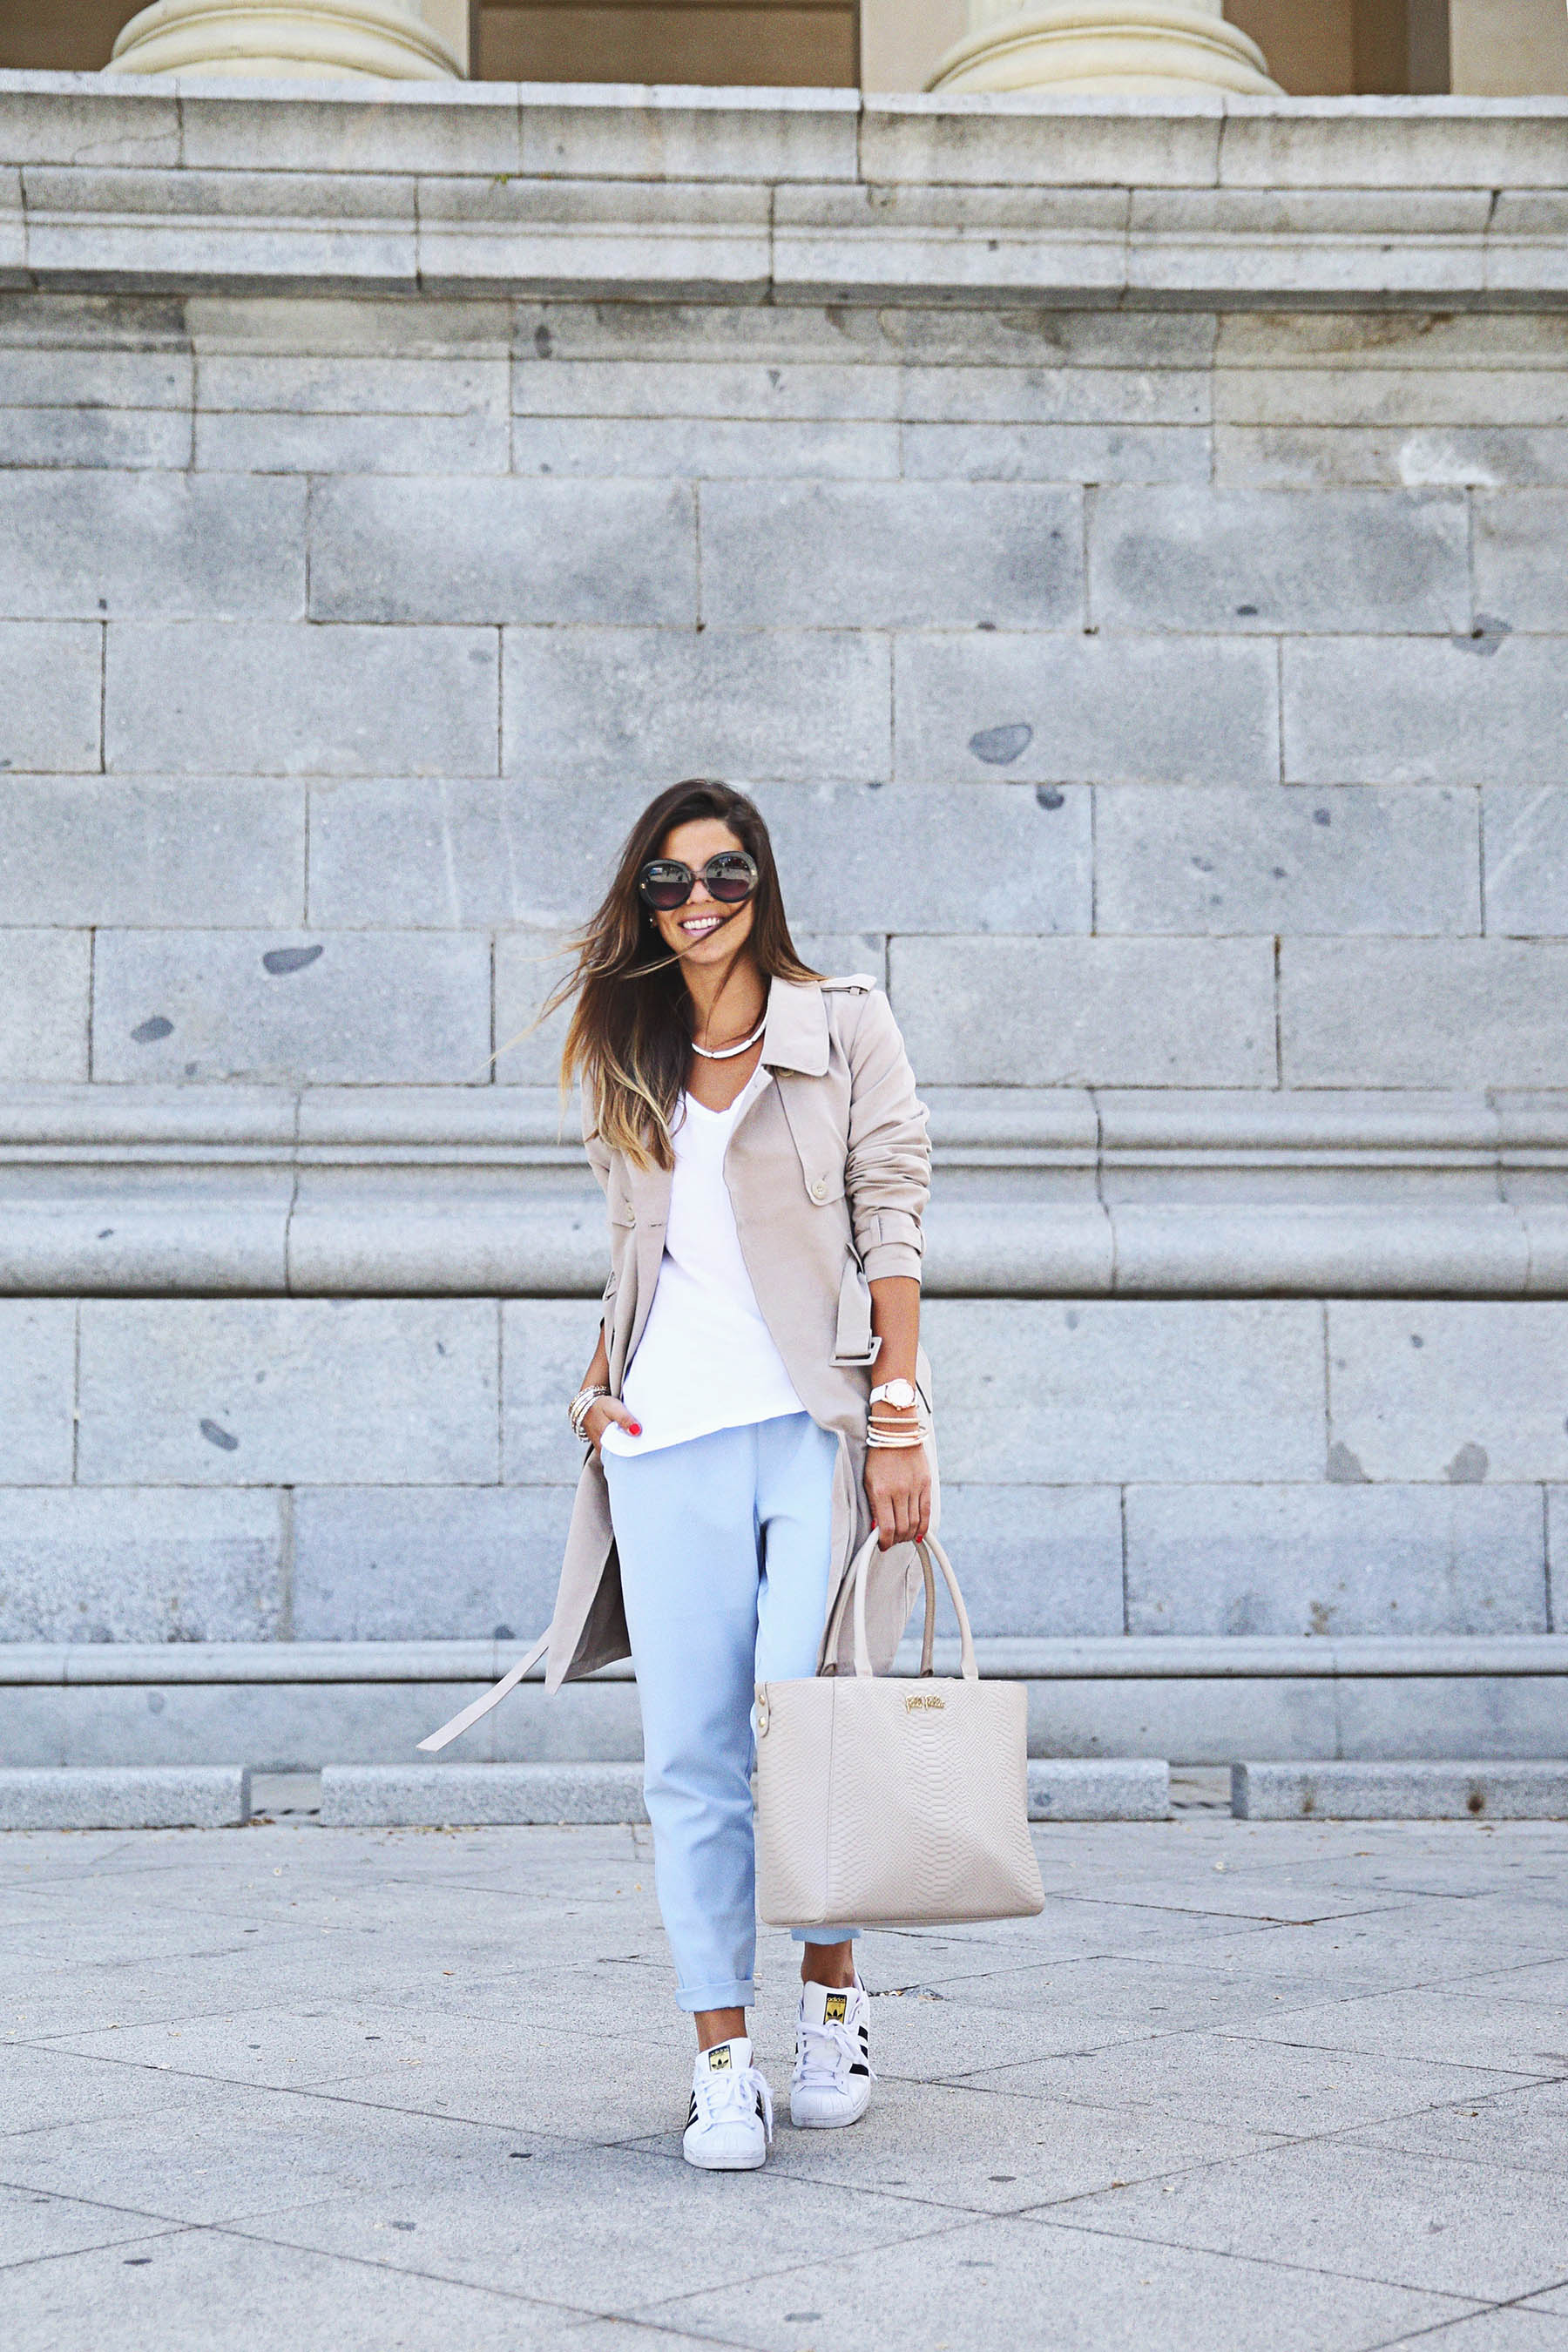 Some people don't think boyfriend jeans are that versatile. Actually they are. Just throw on a trench coat, white tee and a pair of sneakers. Vis Natalia Cabezas Trench Coat/Jeans: Asos, T-shirt: Zara, Sneakers: Adidas, Bag: Folli Follie How To Wear Boyfriend Jeans